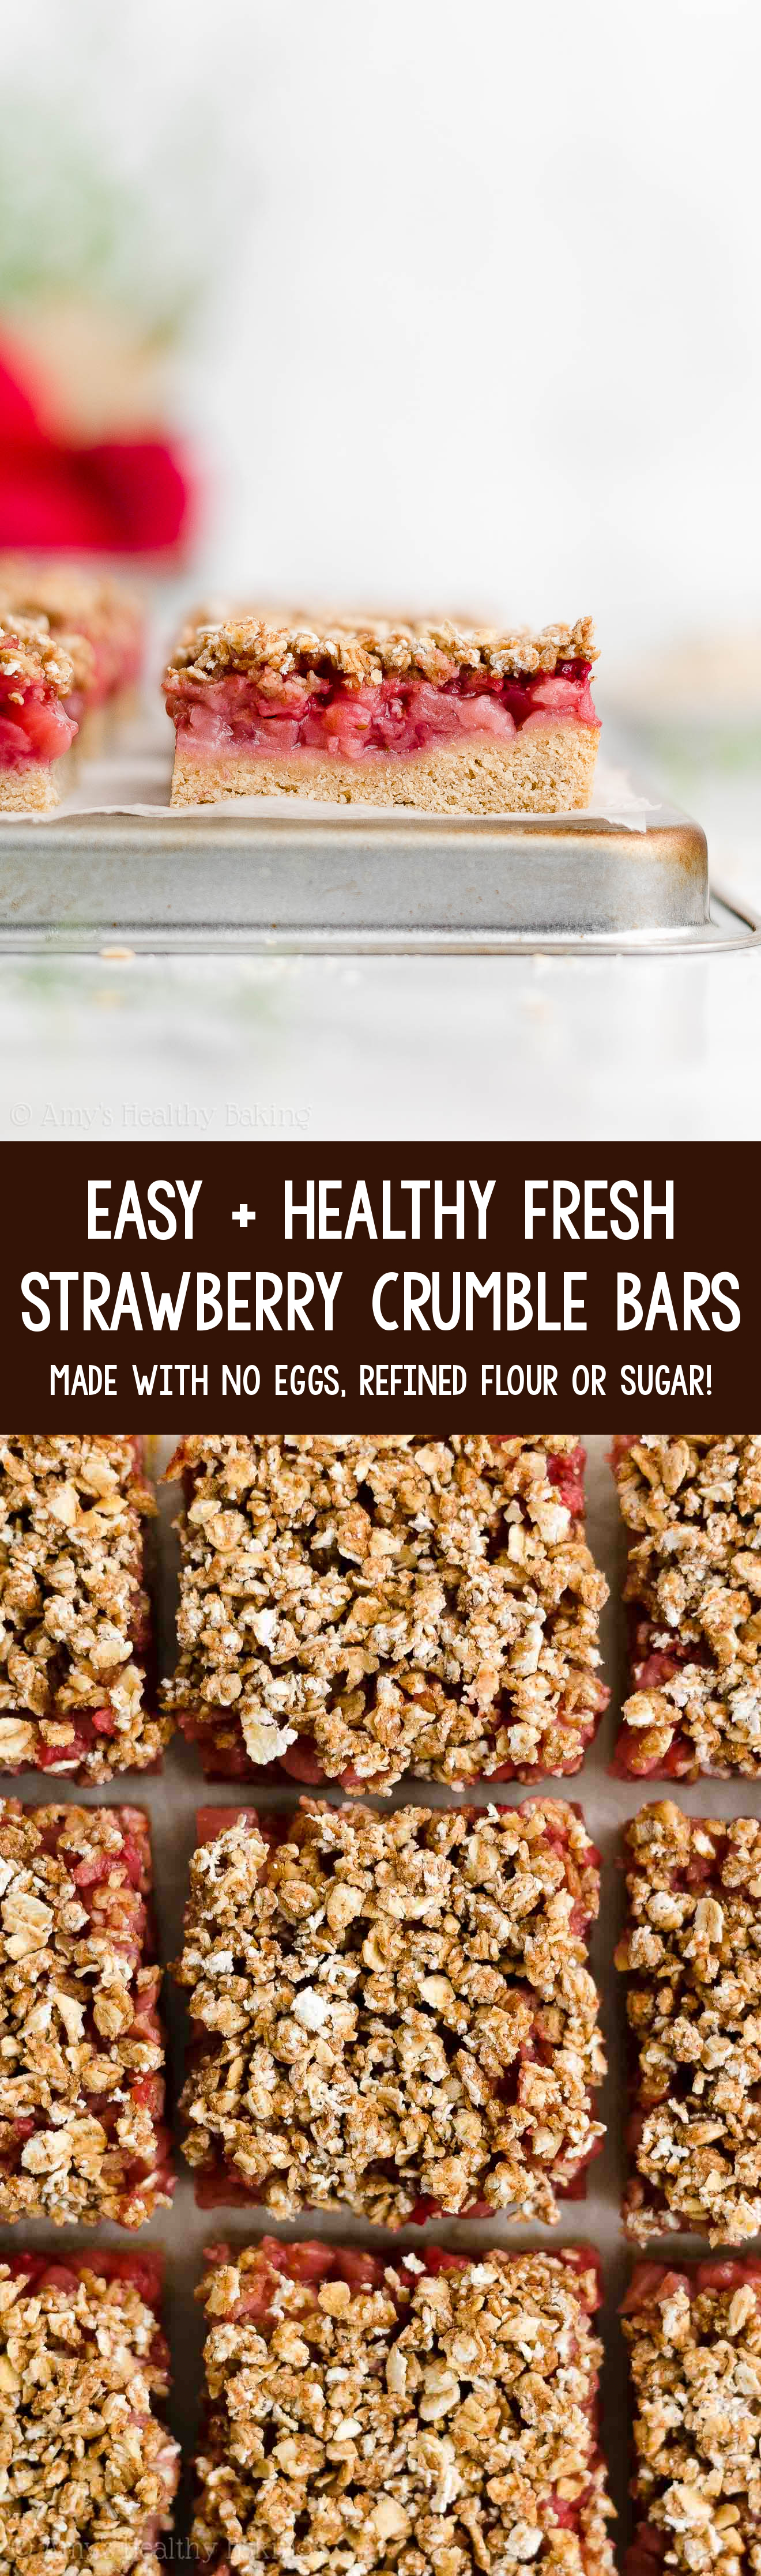 Best Easy Healthy Clean Eating Np Sugar Vegan Strawberry Oatmeal Crumble Bars